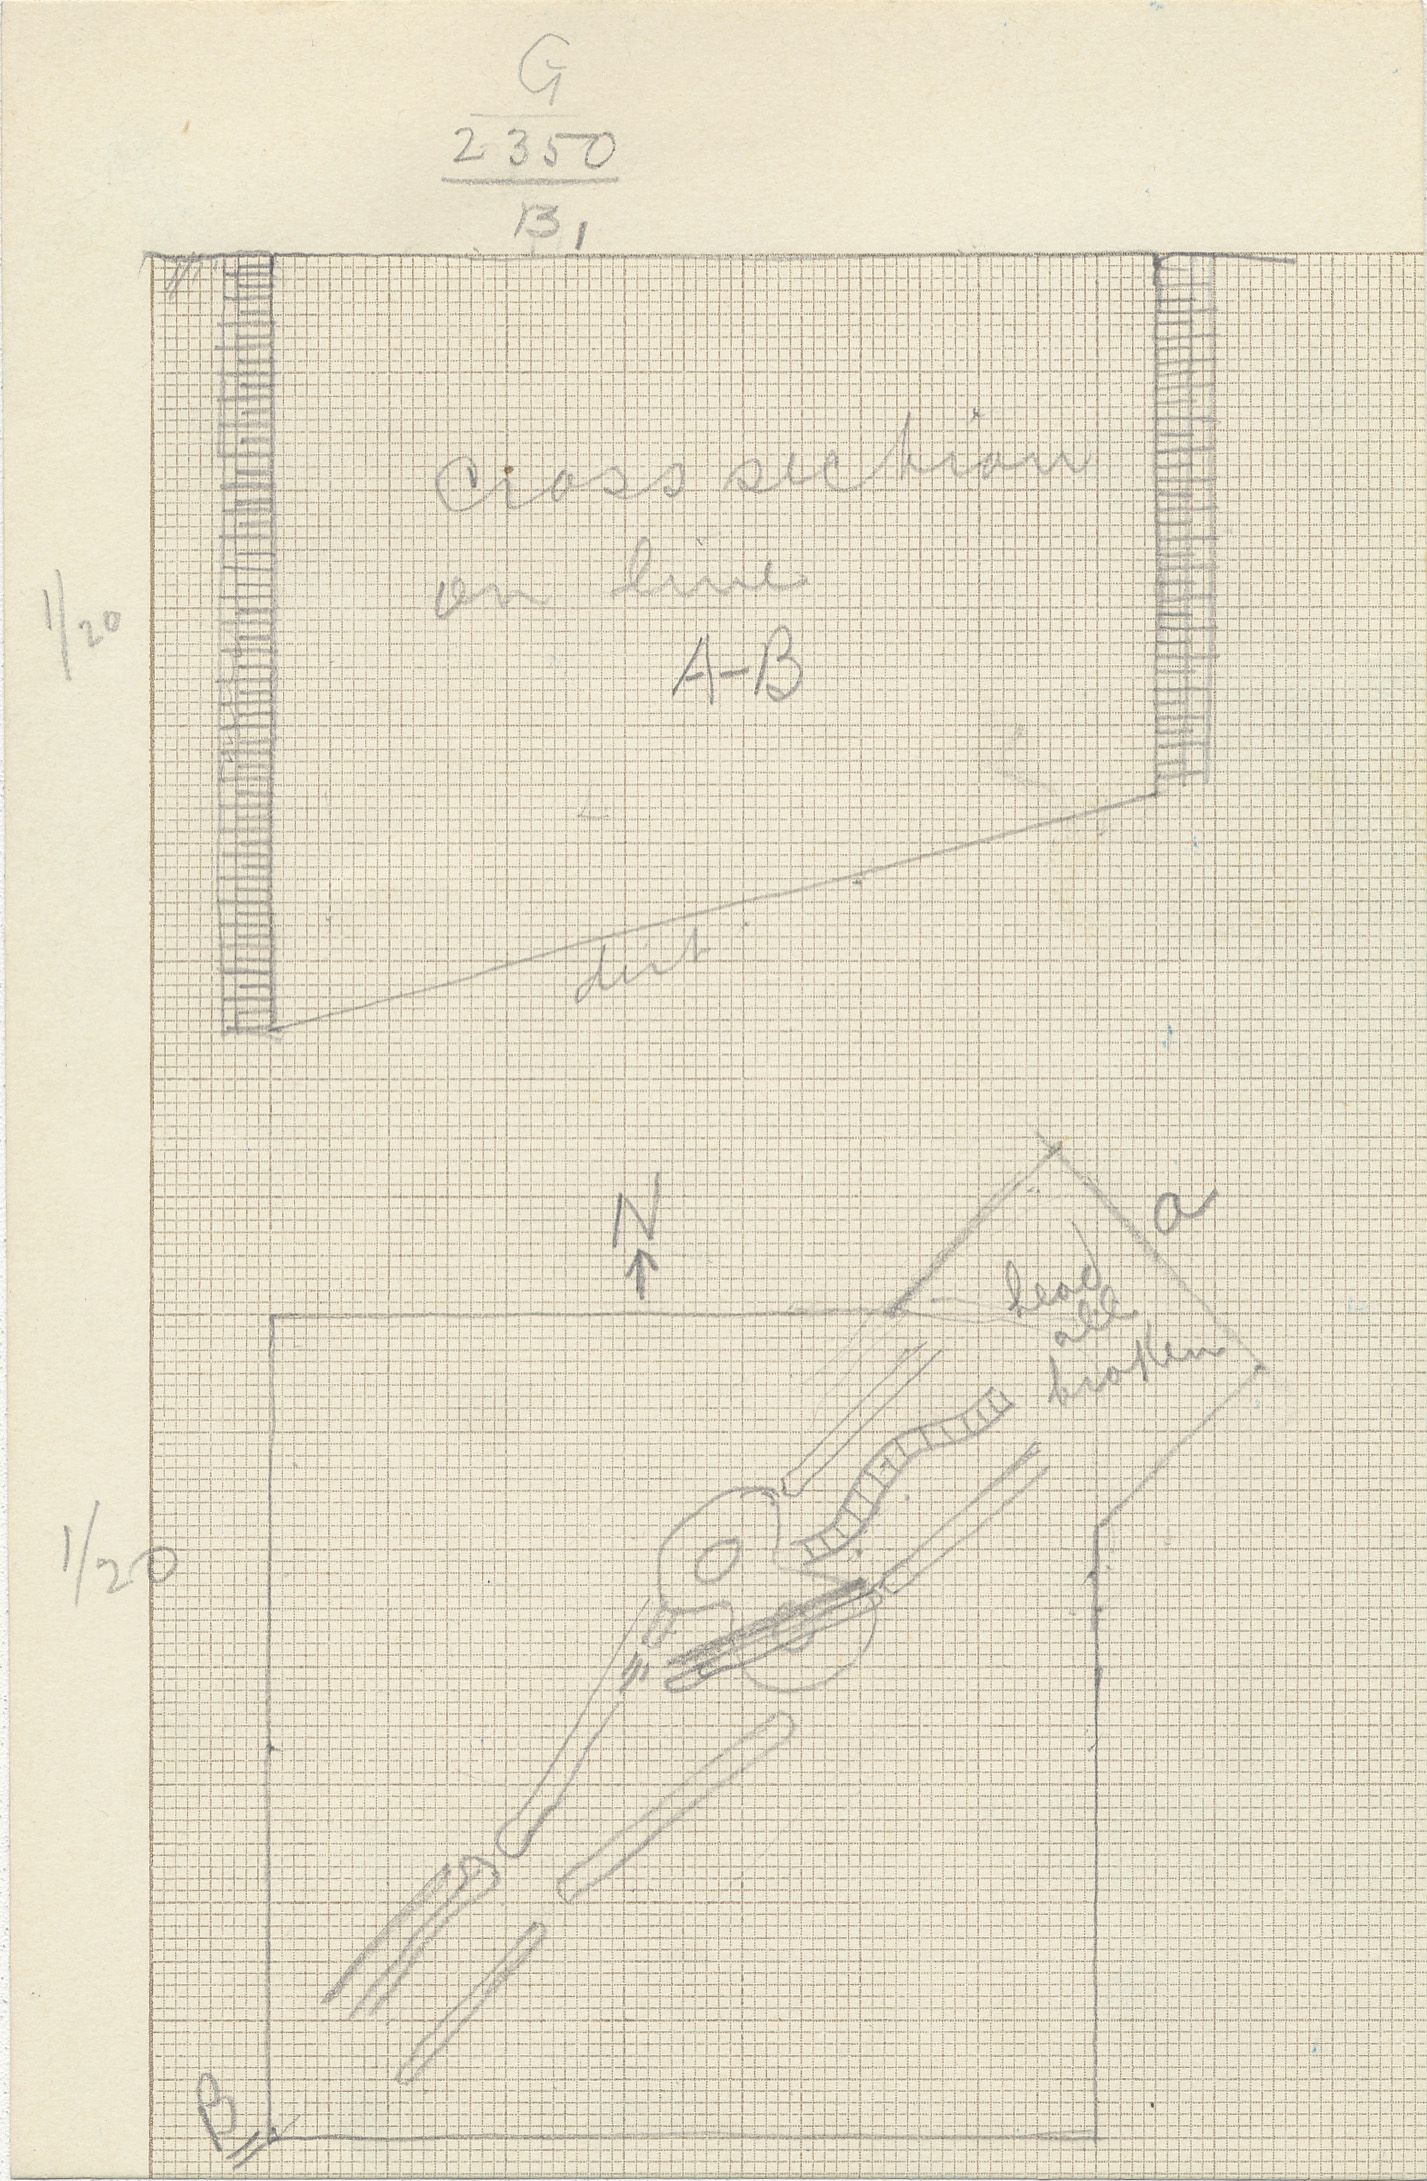 Maps and plans: G 2350 = G 5290, Shaft B1